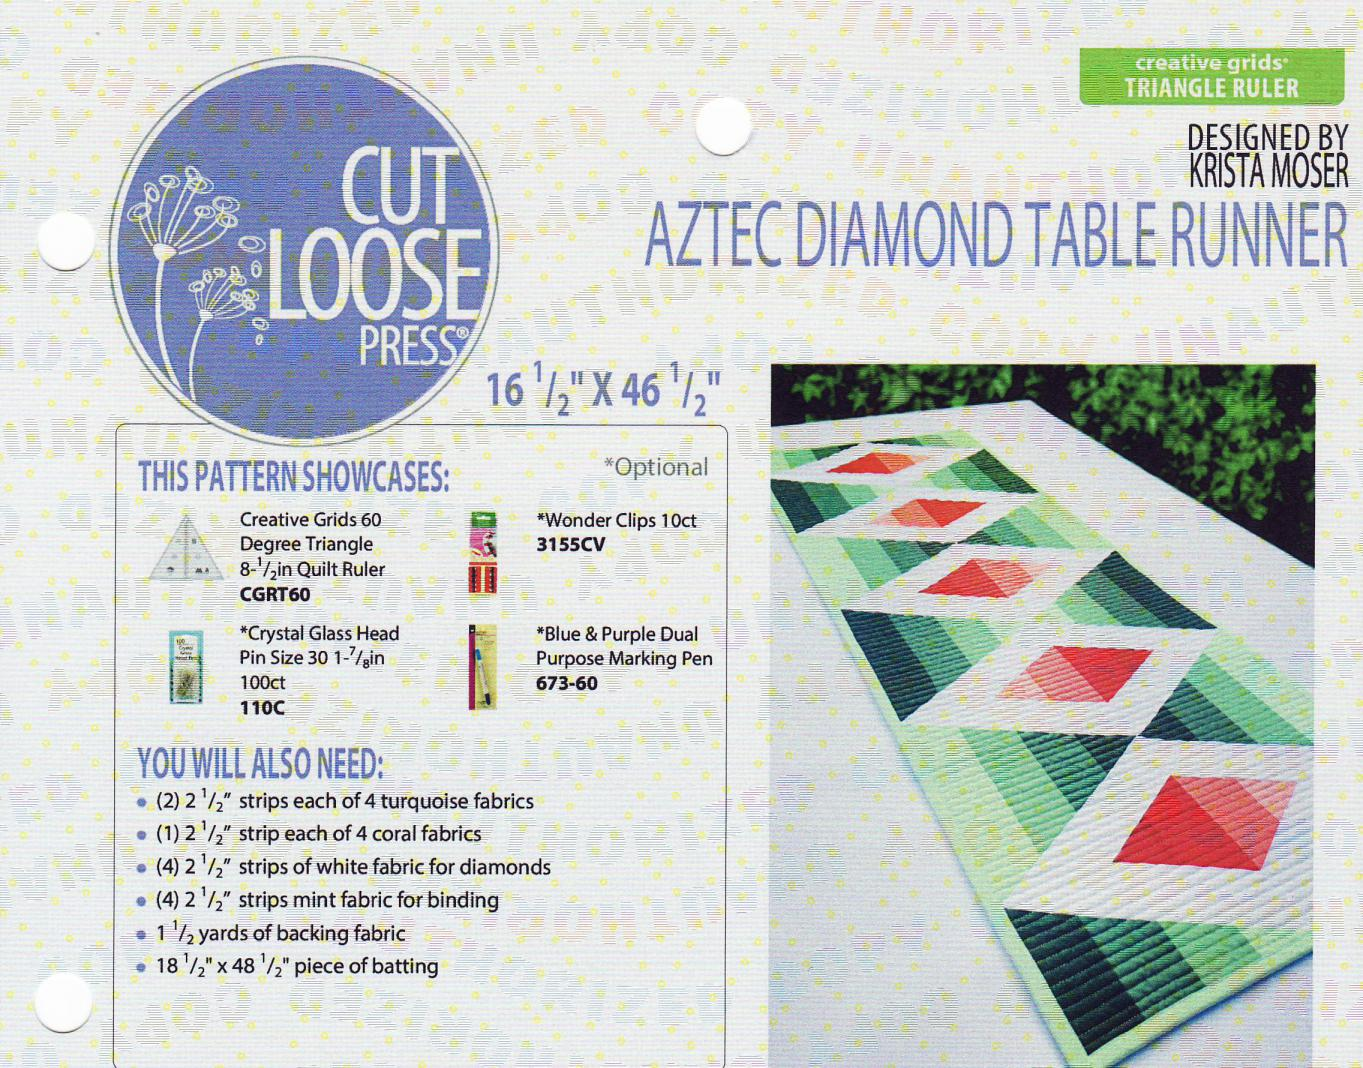 Aztec Diamond Table Runner sewing pattern Cut Loose Press